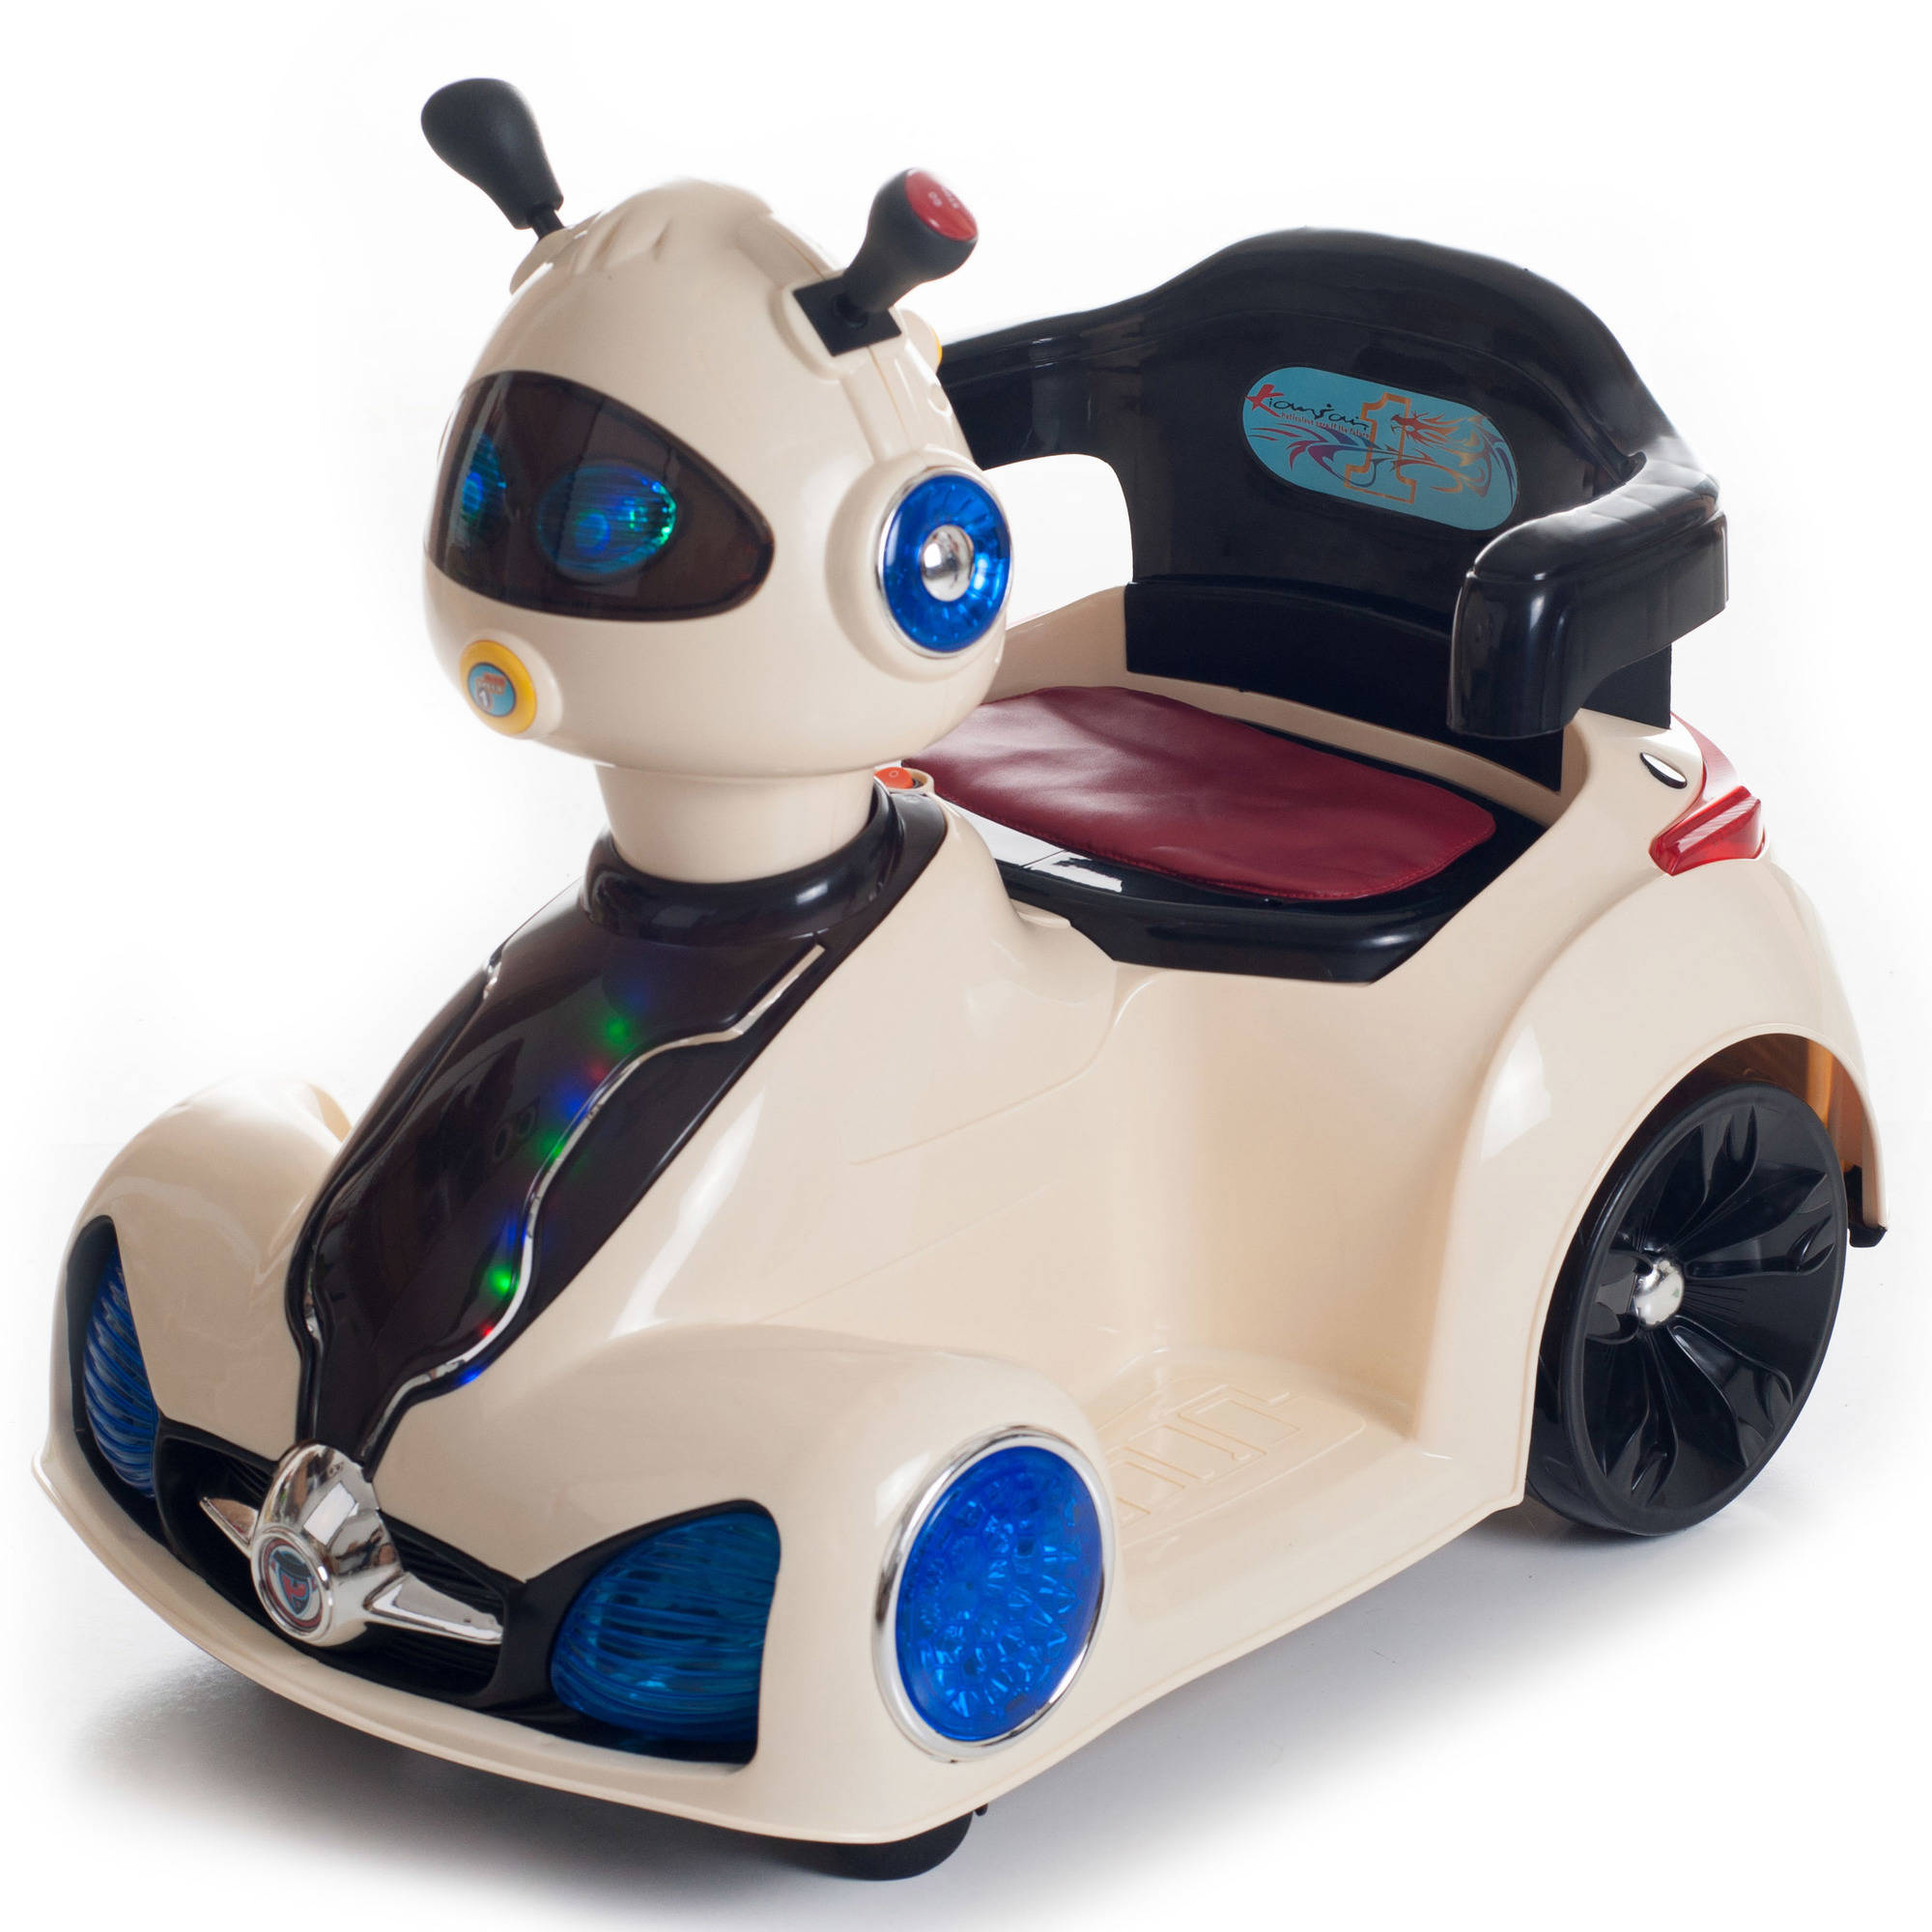 Lil' Rider Space Rover Battery-Operated Ride-On